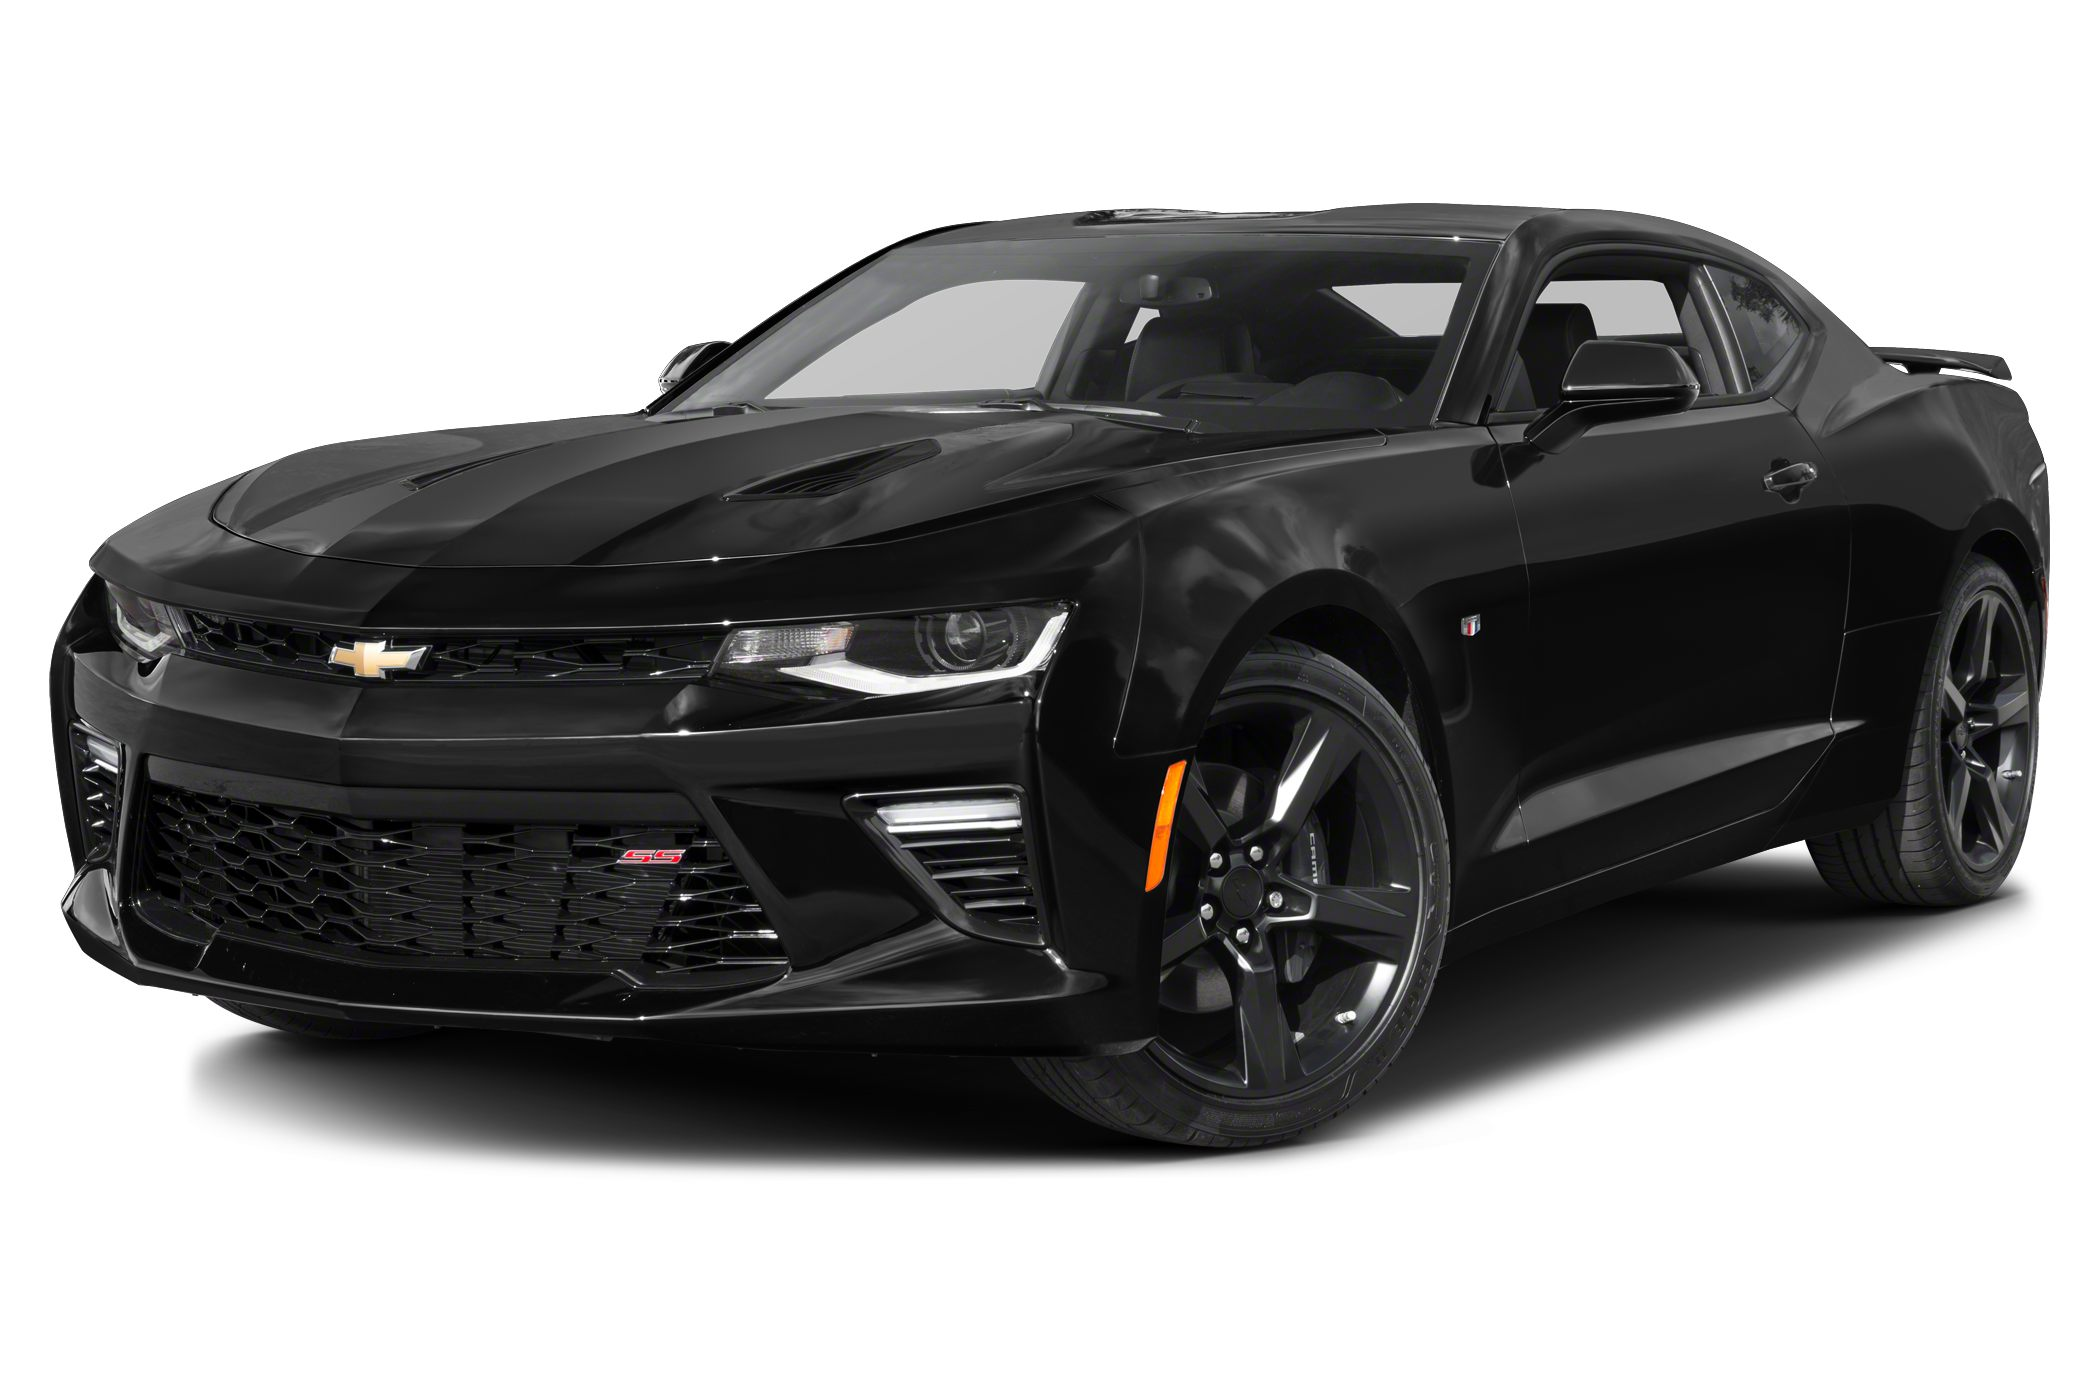 2017 CHEVROLET CAMARO SS W/1SS   Cars and Vehicles   West Union SC ...